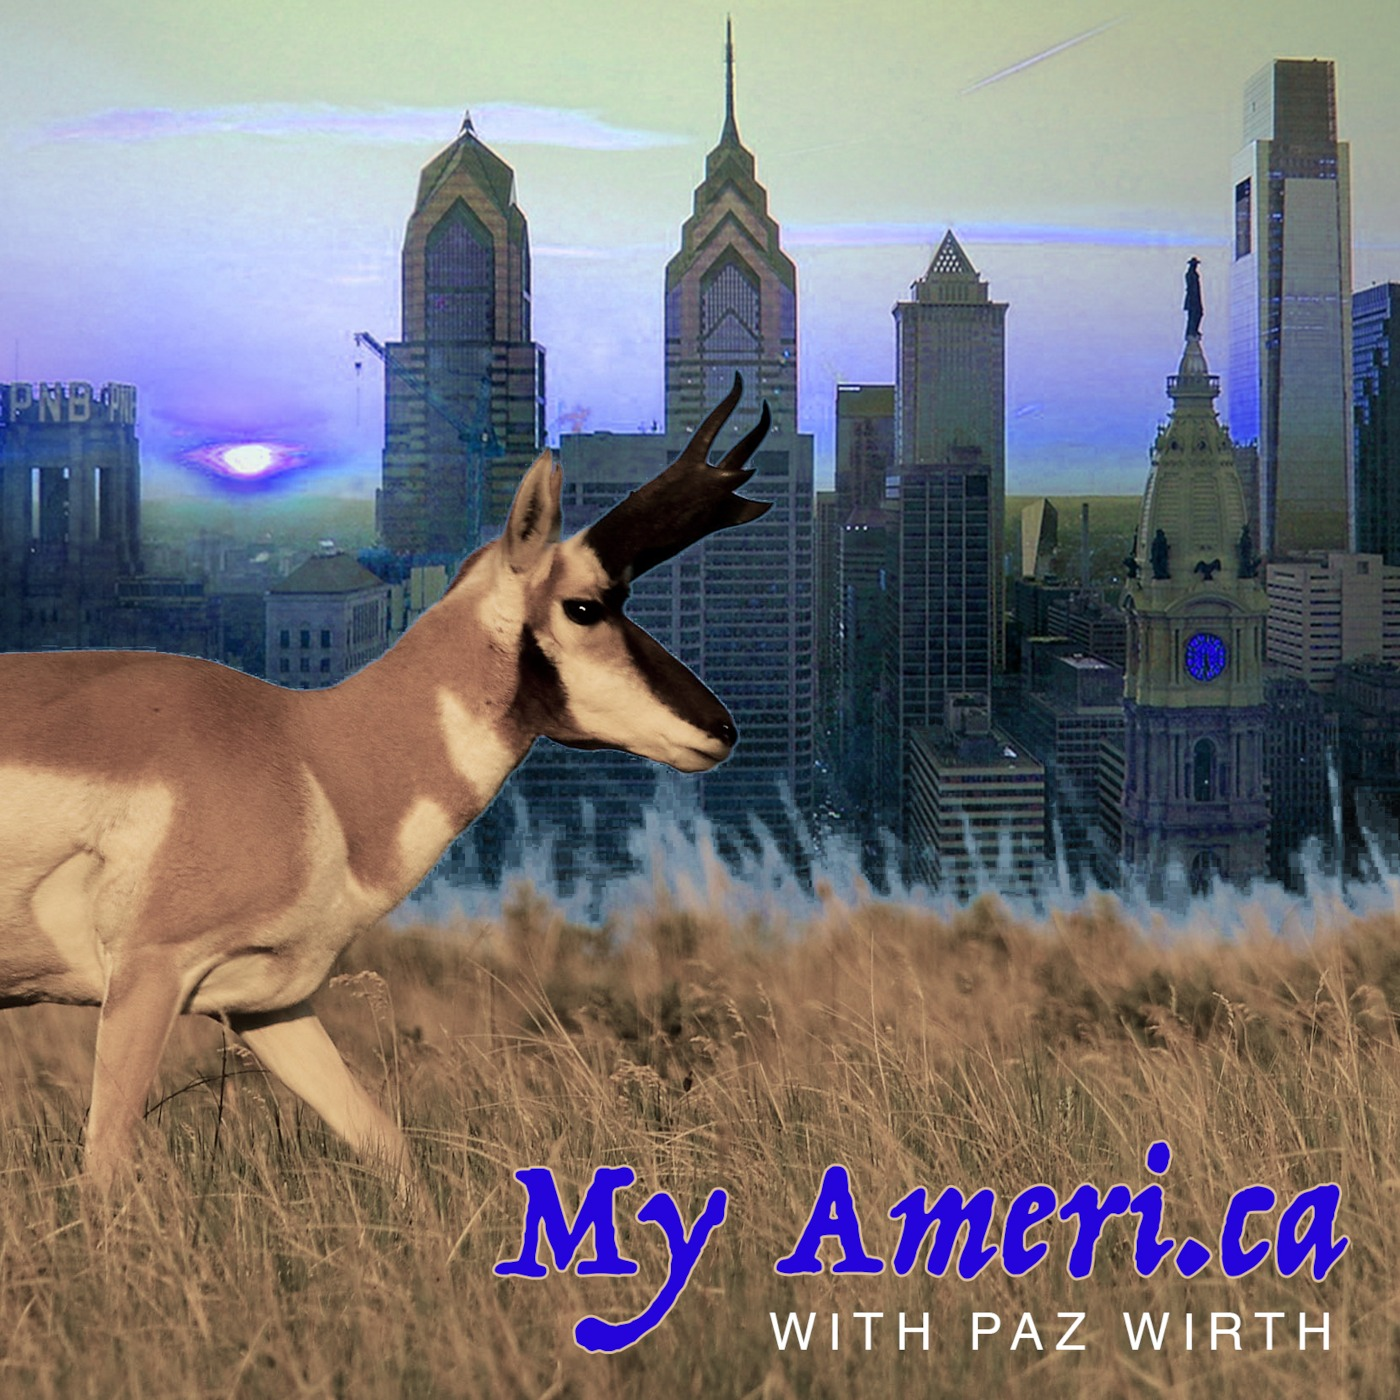 My America with PAZ WIRTH